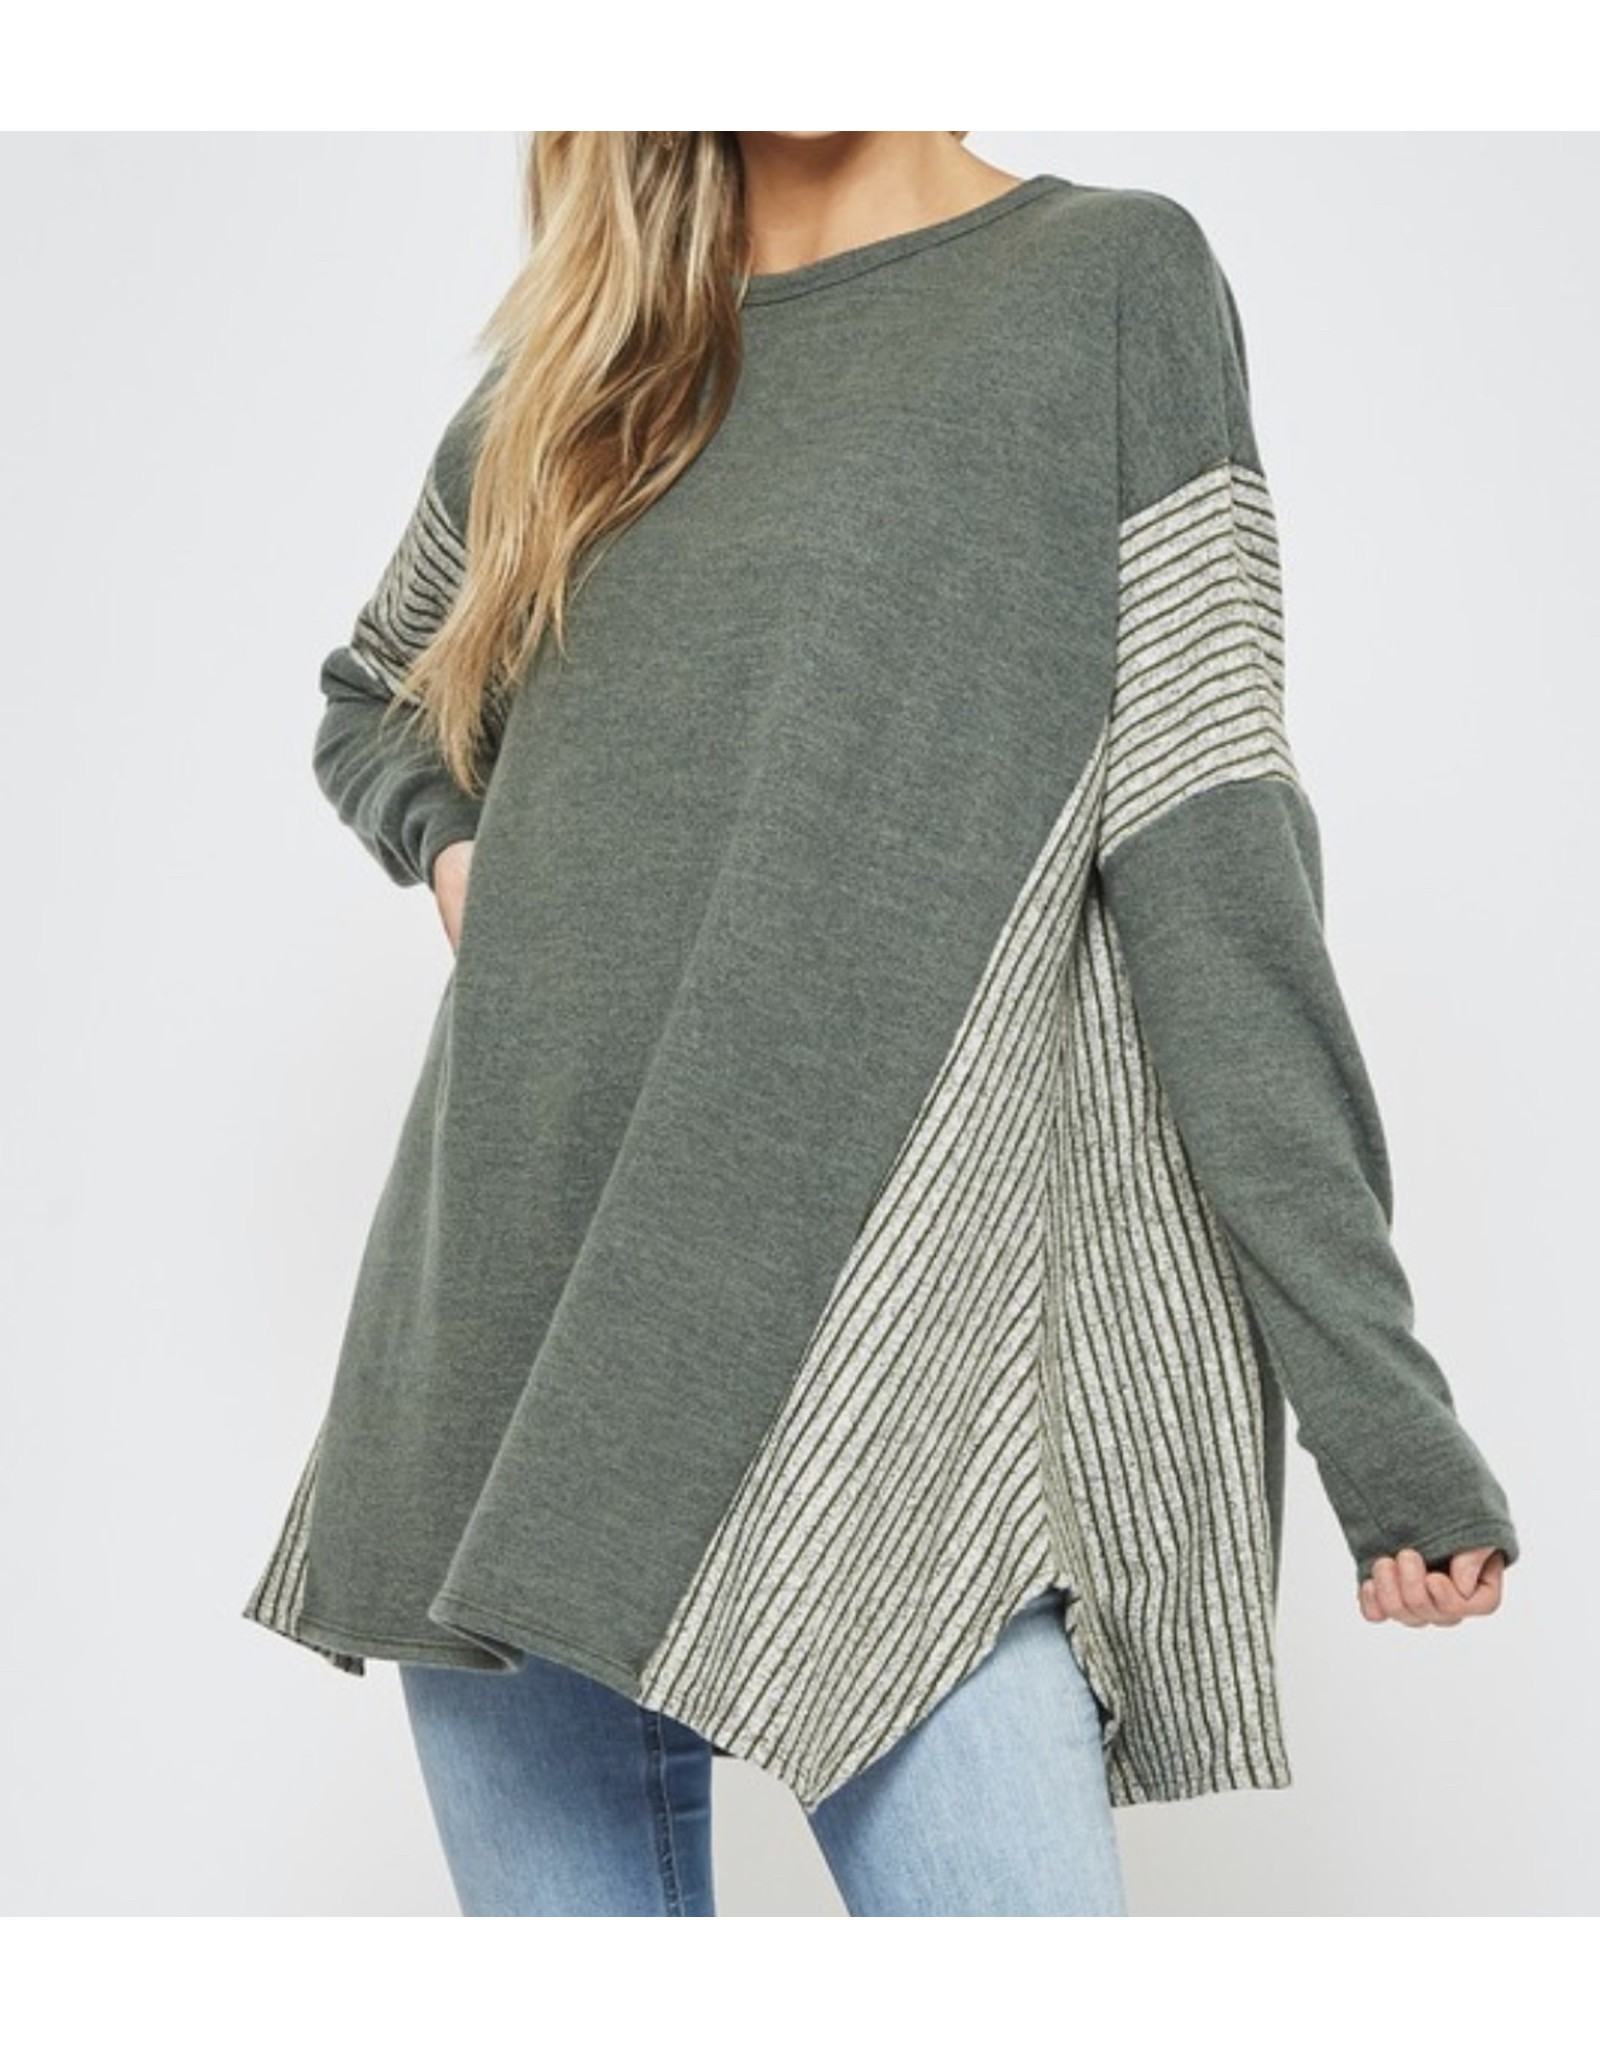 LATA Heather Stripe Sweater